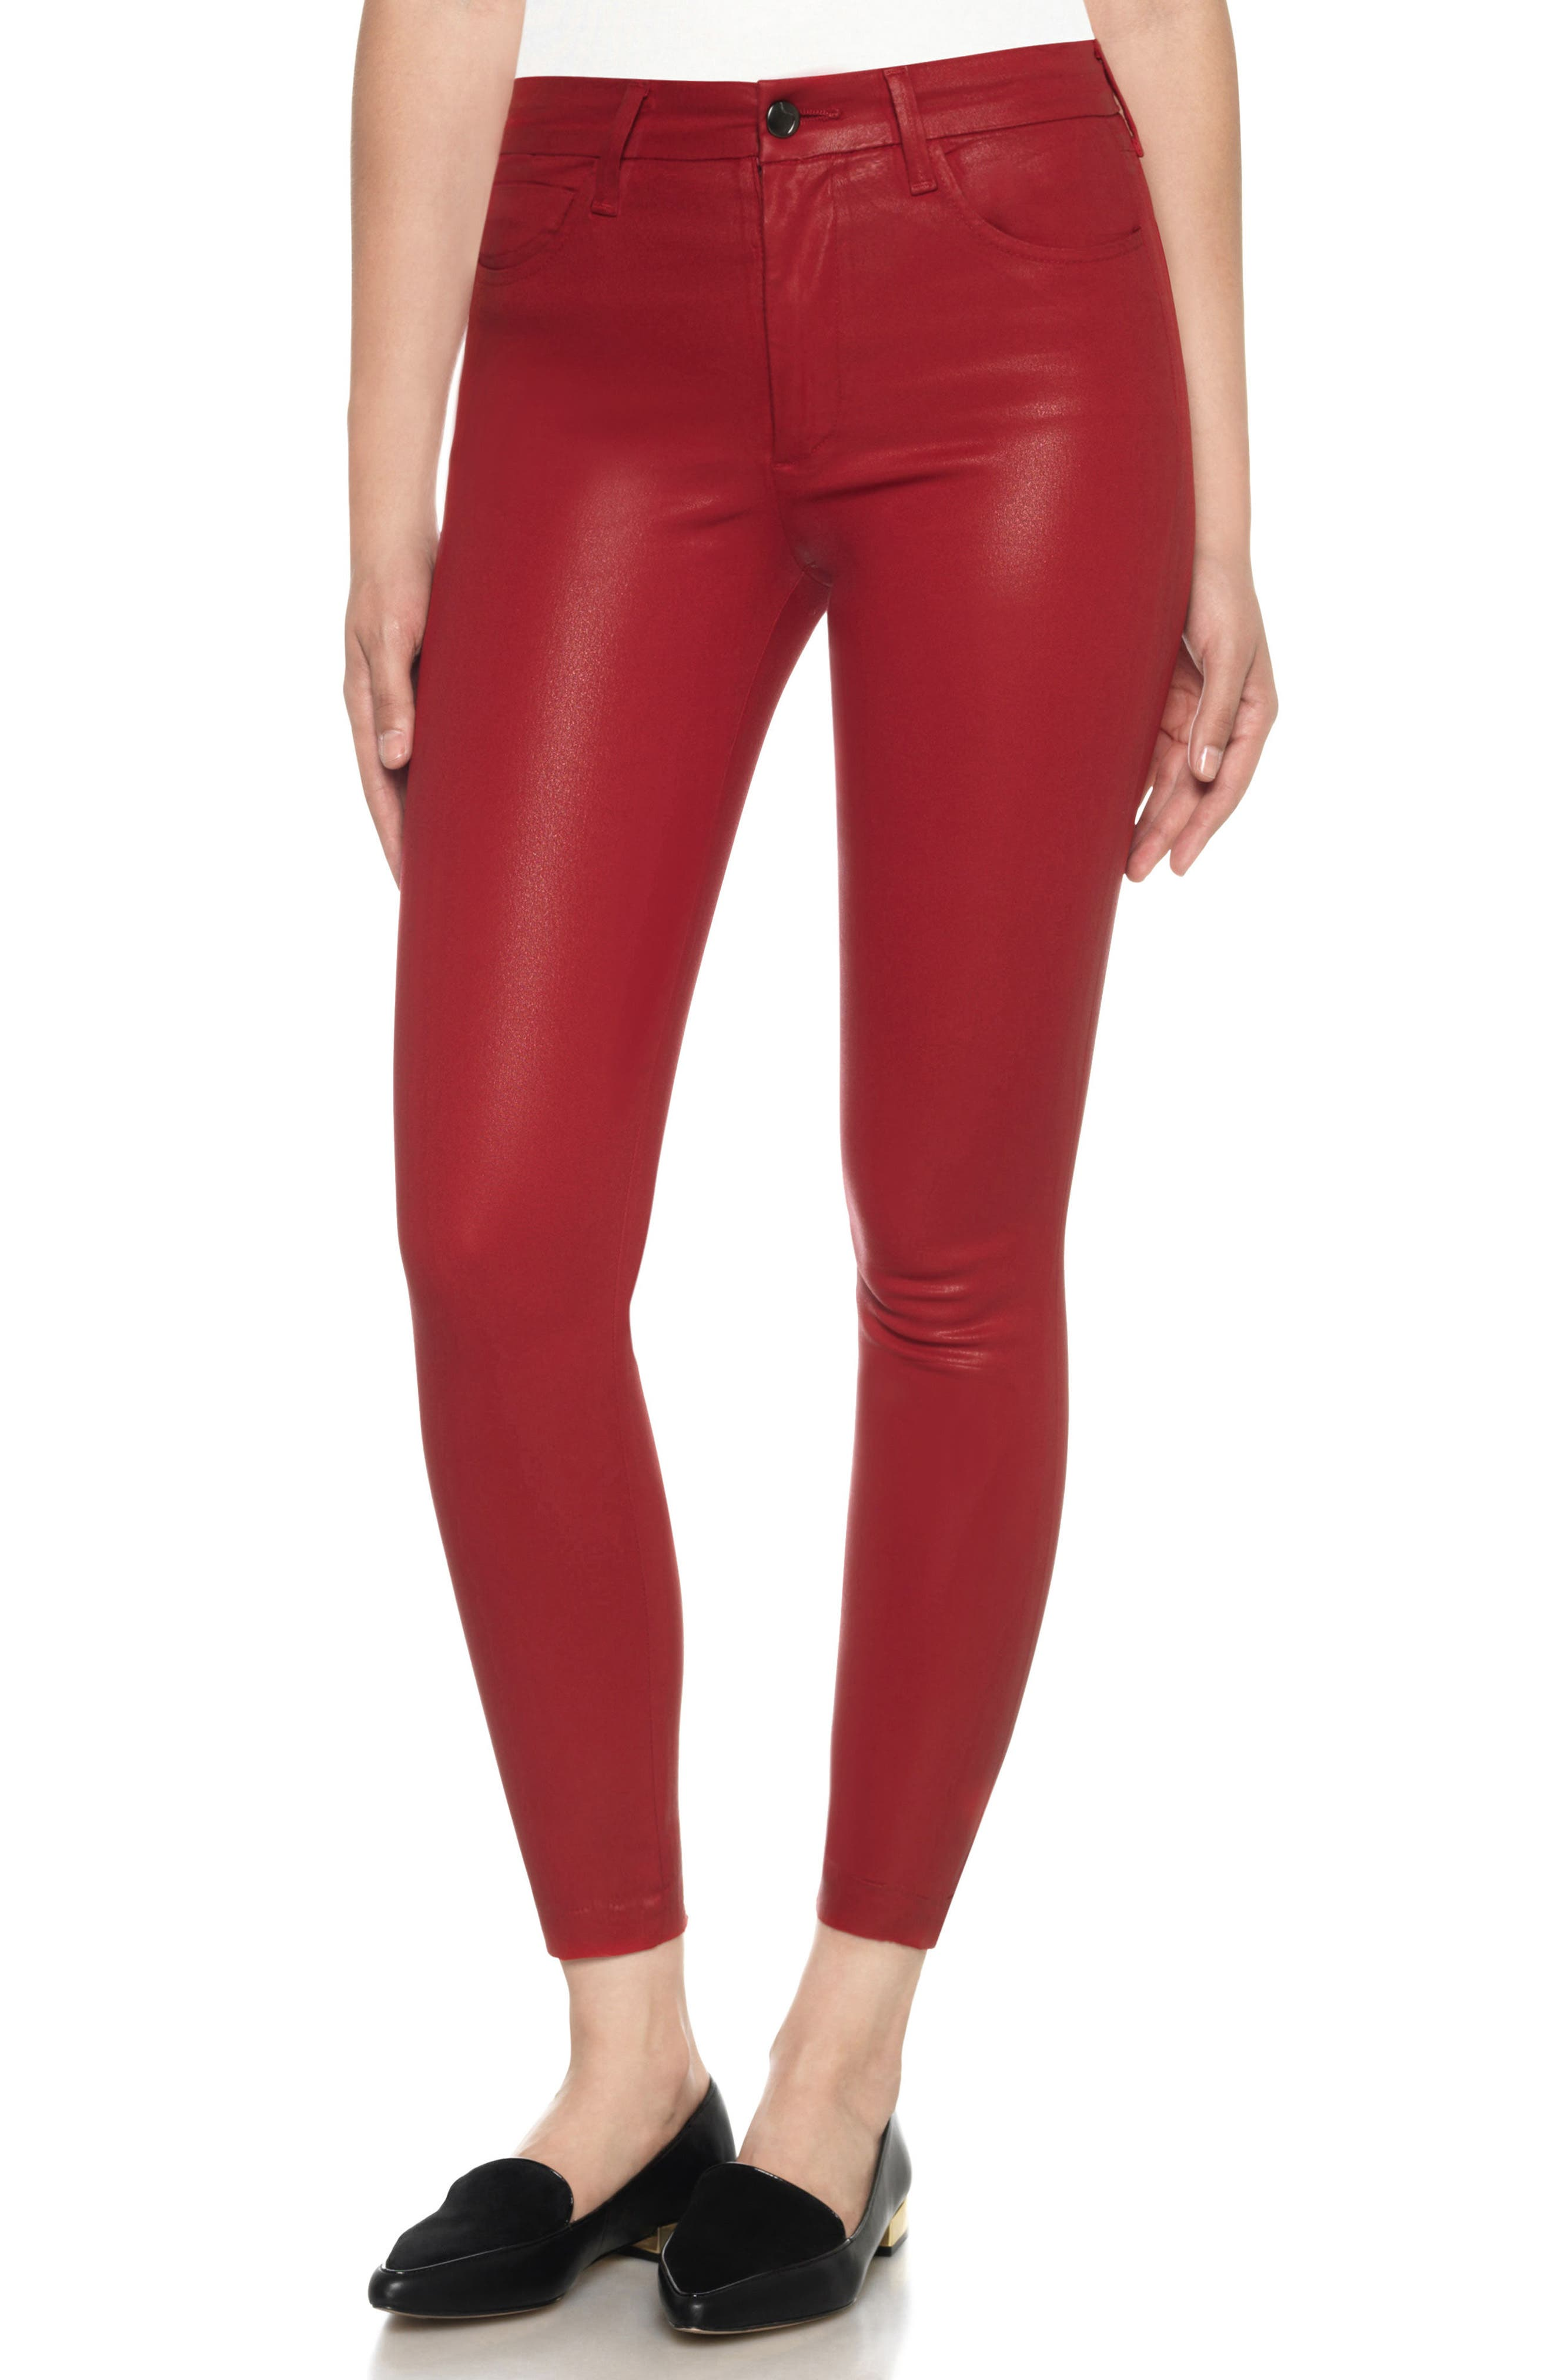 Main Image - Joe's Charlie Coated High Waist Ankle Skinny Jeans